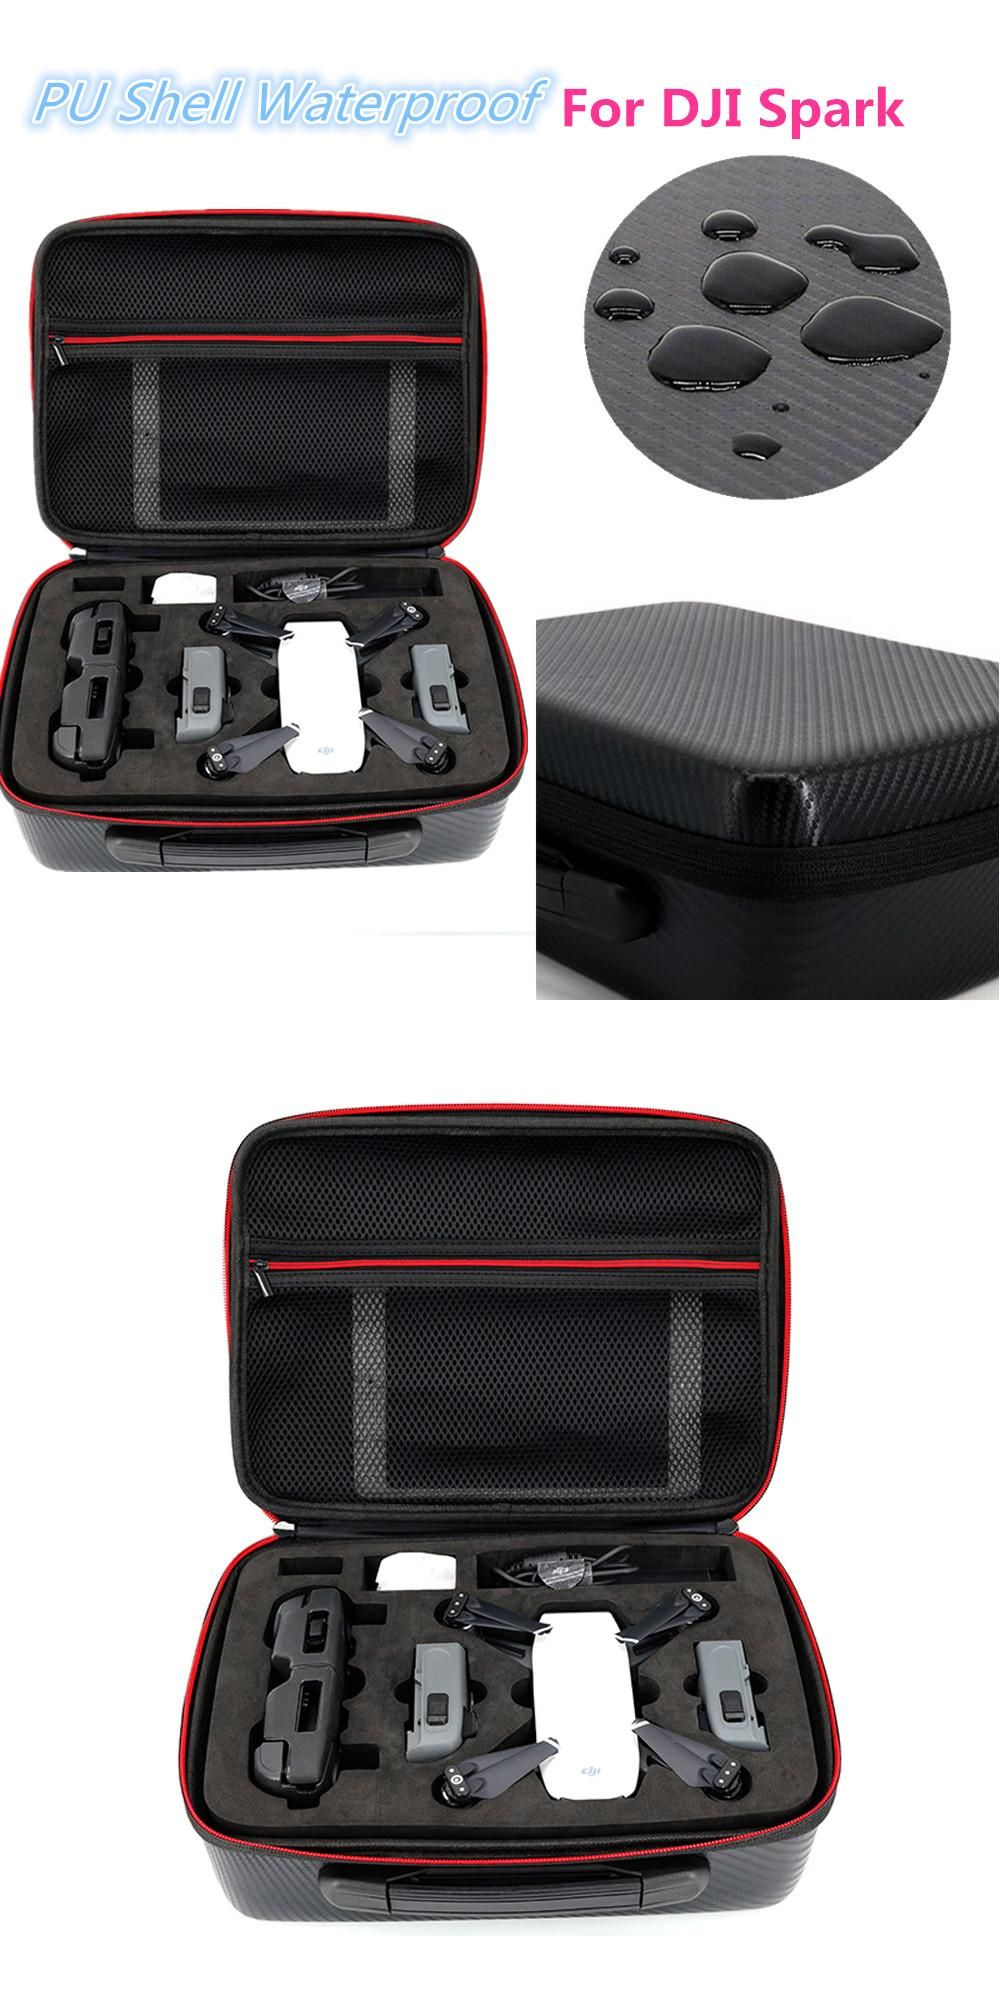 HOBBYINRC For DJI Spark Drone Bag PU Shell Waterproof Storage Carry Case Handbag Box